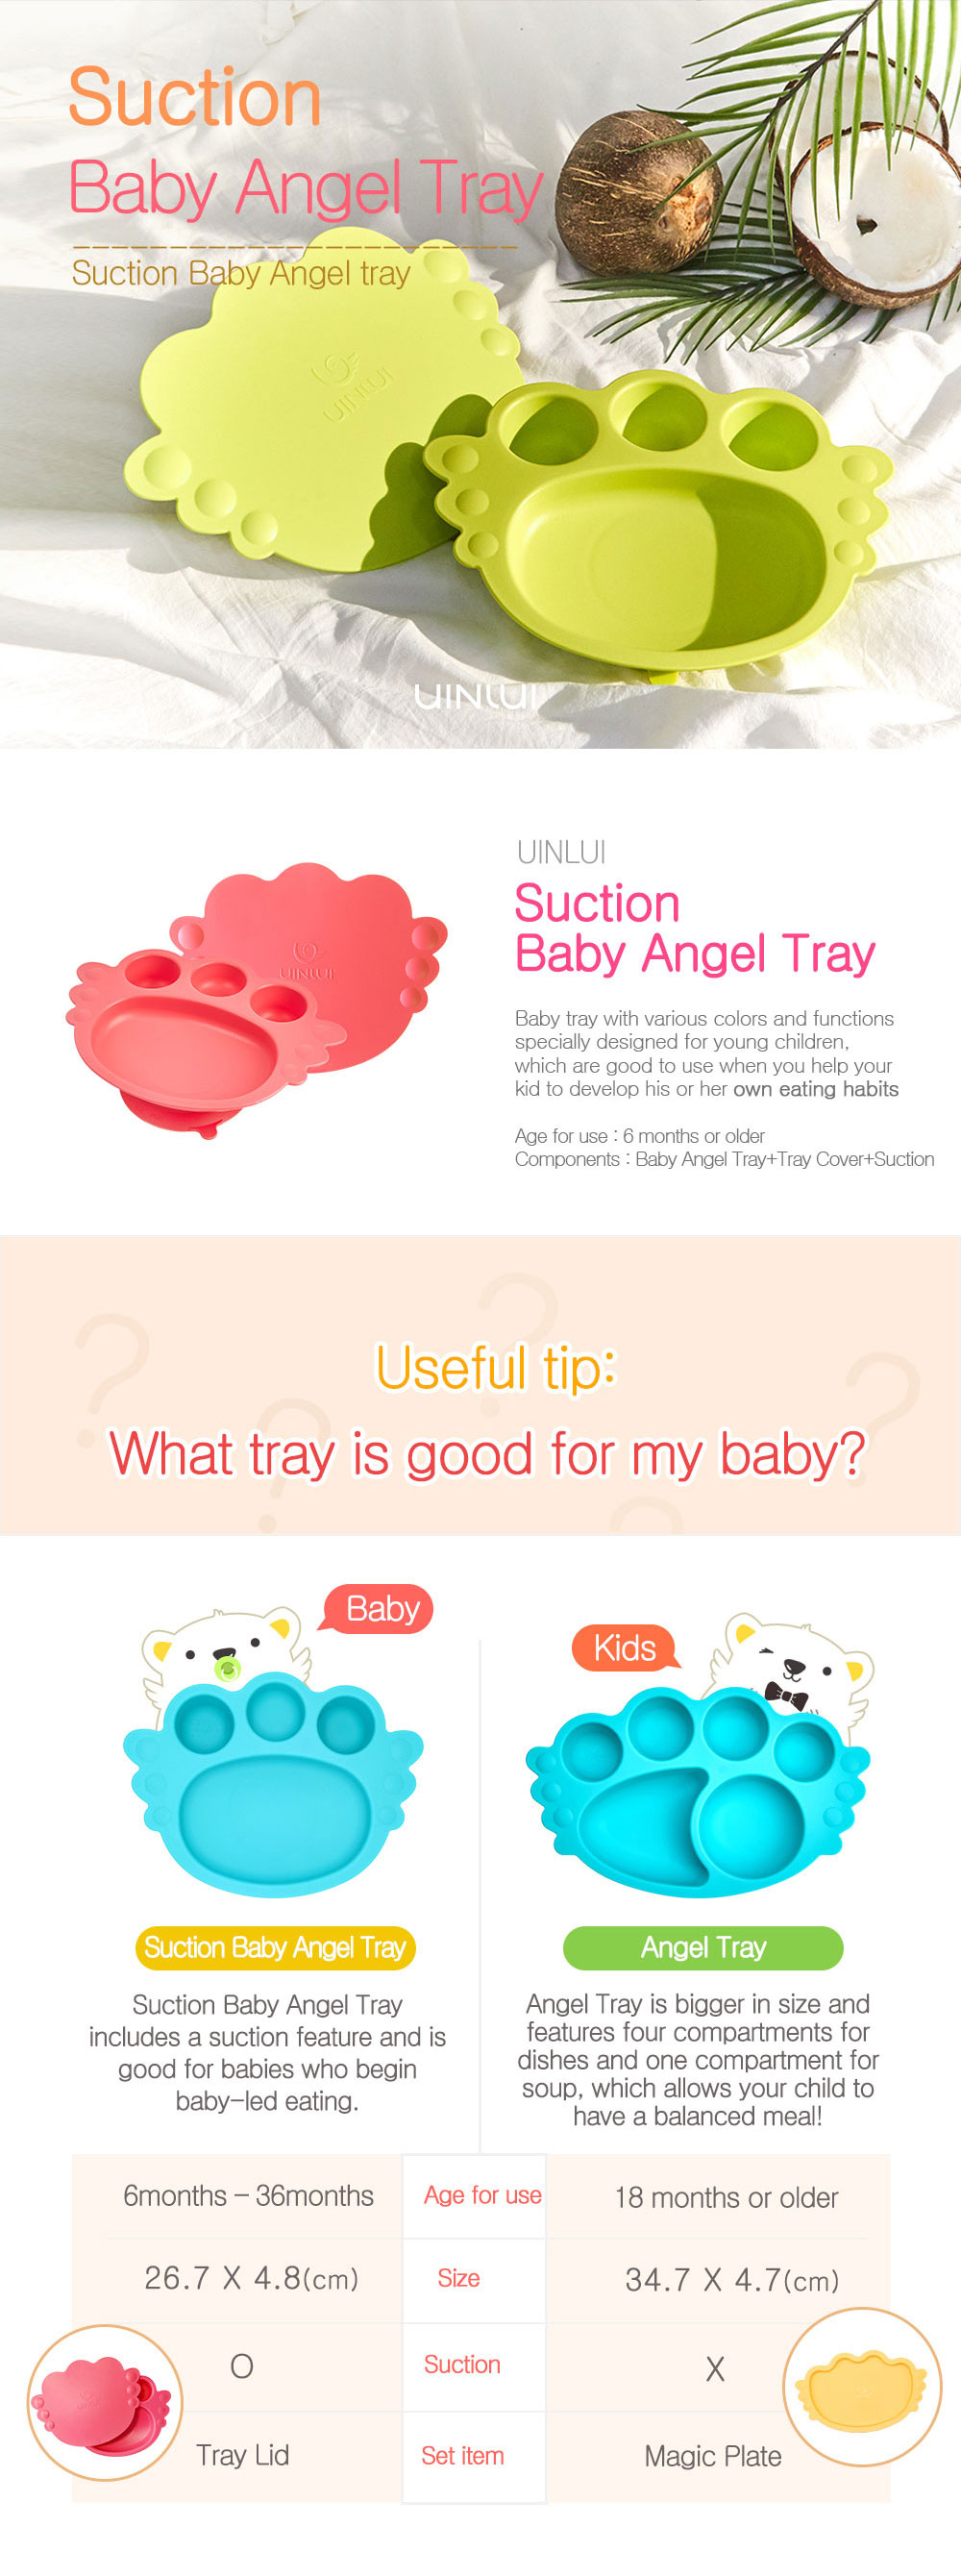 Suction Baby Angel Tray